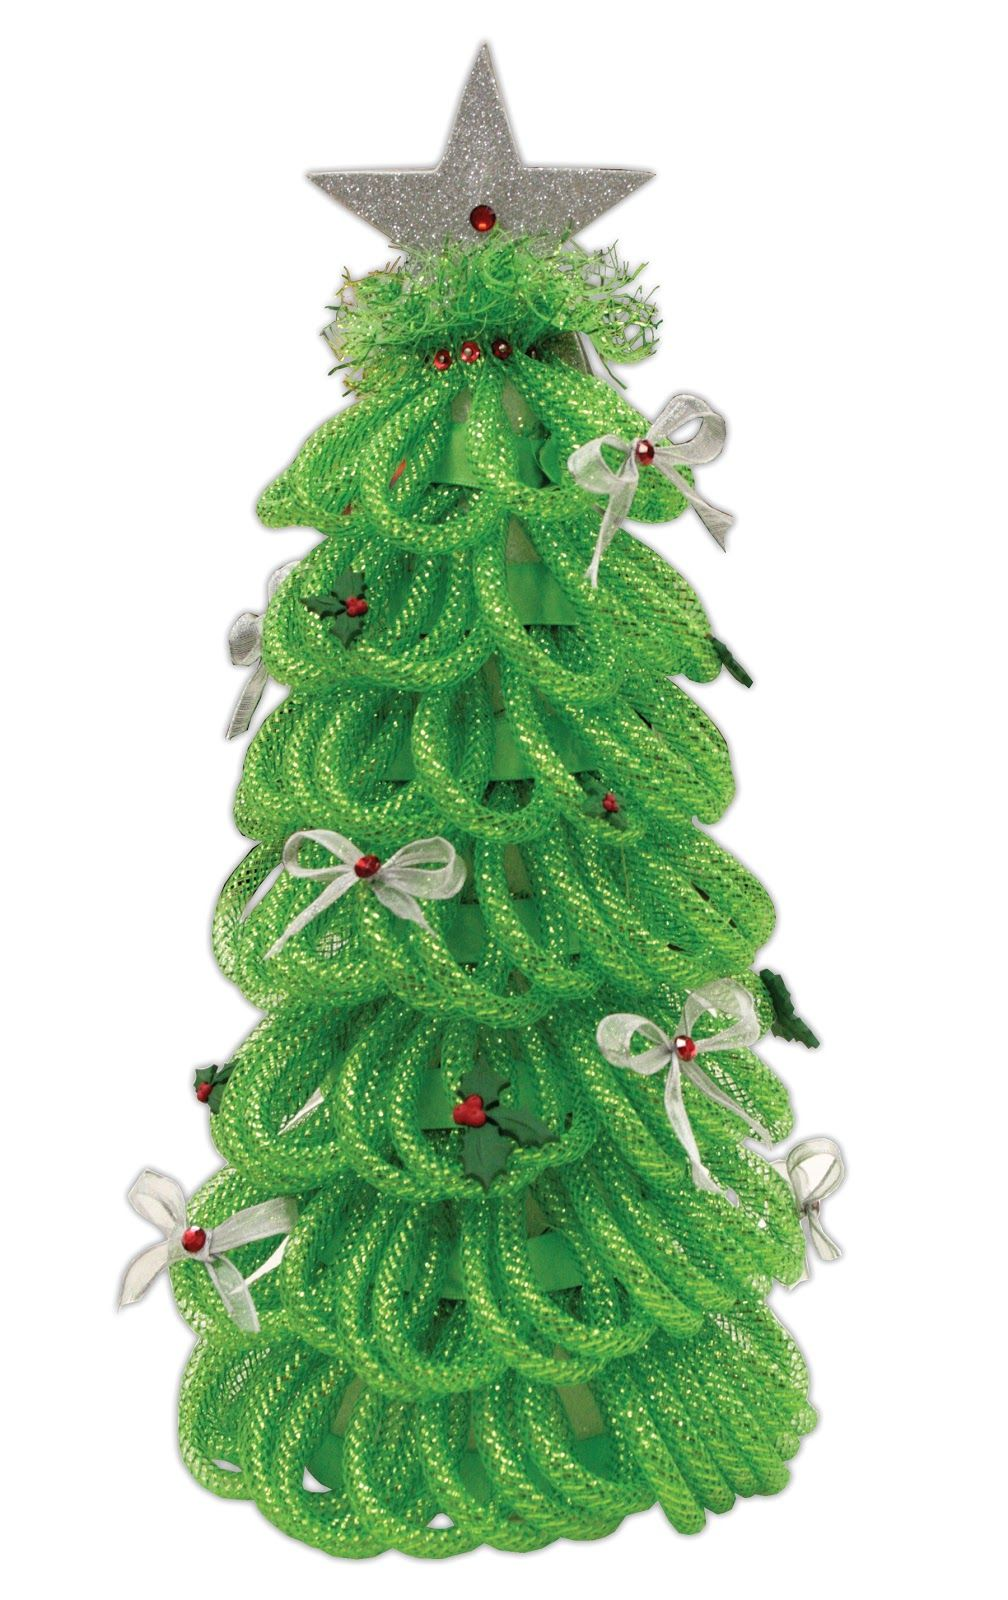 Crafts with deco mesh - Deco Mesh Tree Sample From Crafts Direct